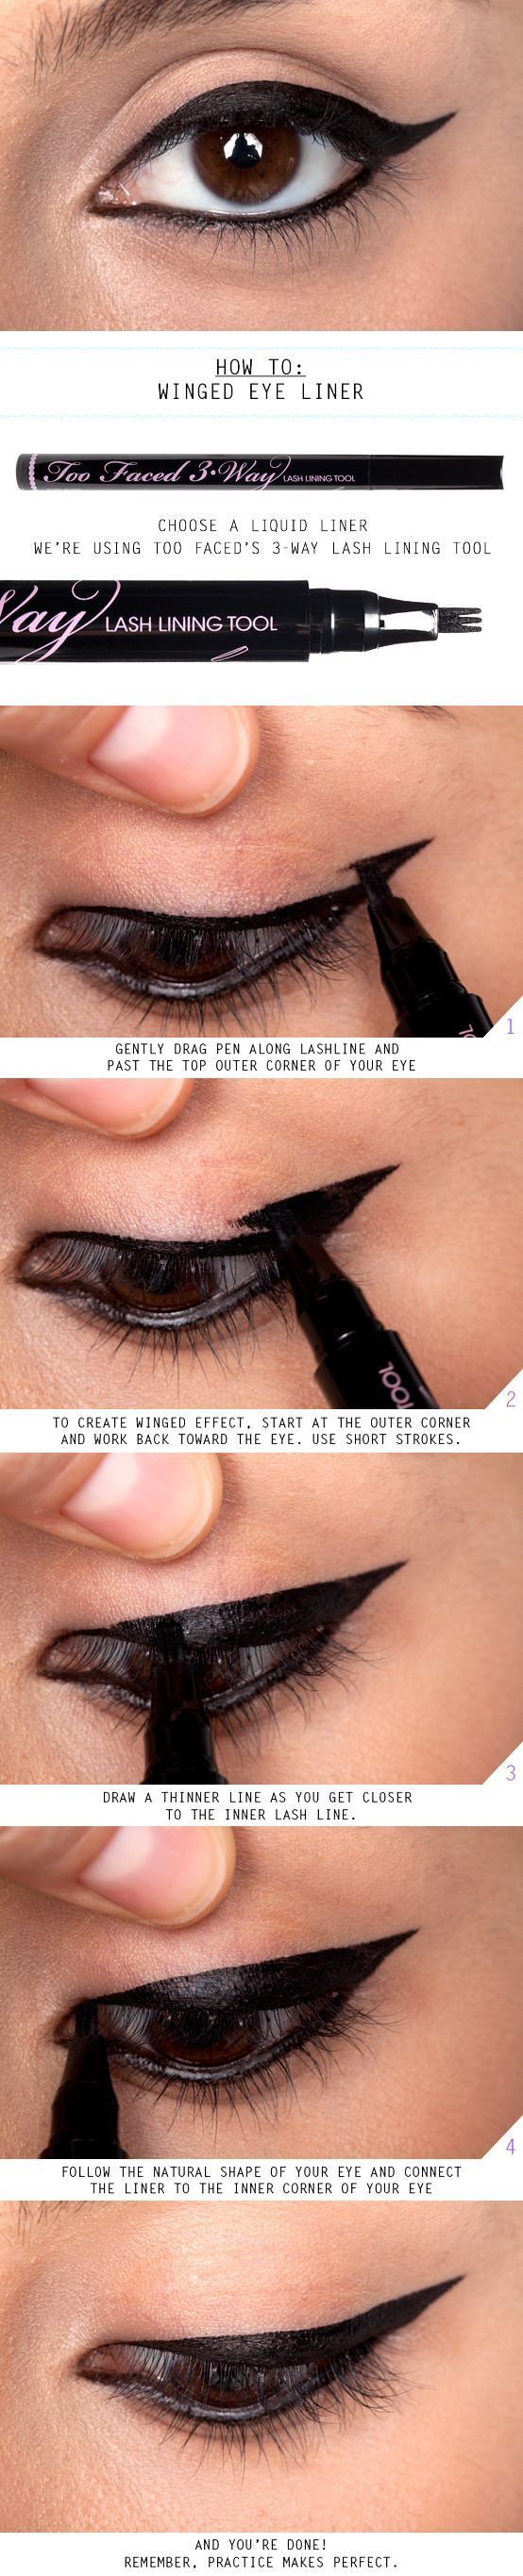 Totally trying this tip!